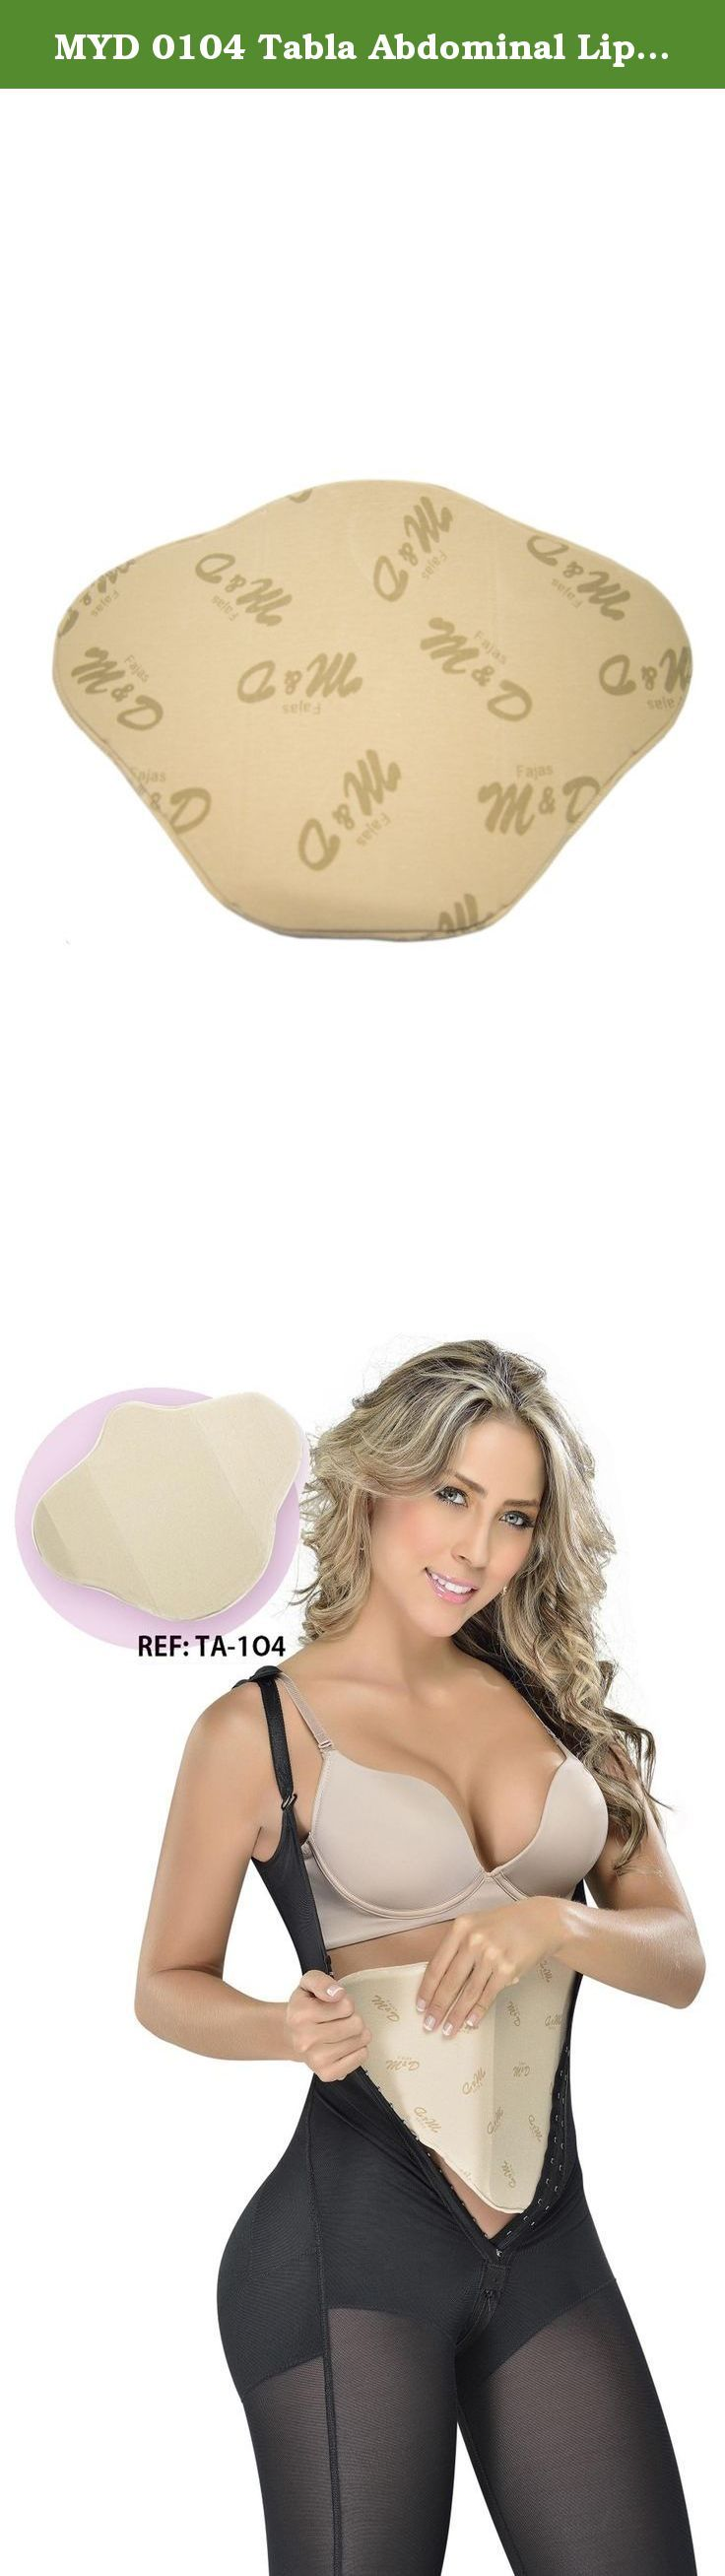 MYD 0104 Tabla Abdominal Liposuction Board Liposuction Compression Garments Beige One size. Shape your body with the most comfortable shapewear for women available! Butterfly shaped Abdominal Support Board with luxury styling and the latest technology for control and compression garments: Perfect for everyday use. This abdominal lipo board has a comfortable foam padding, and neutral color. Special for flattening abdominal skin after liposuction. The abdominal board is perfect to use like...